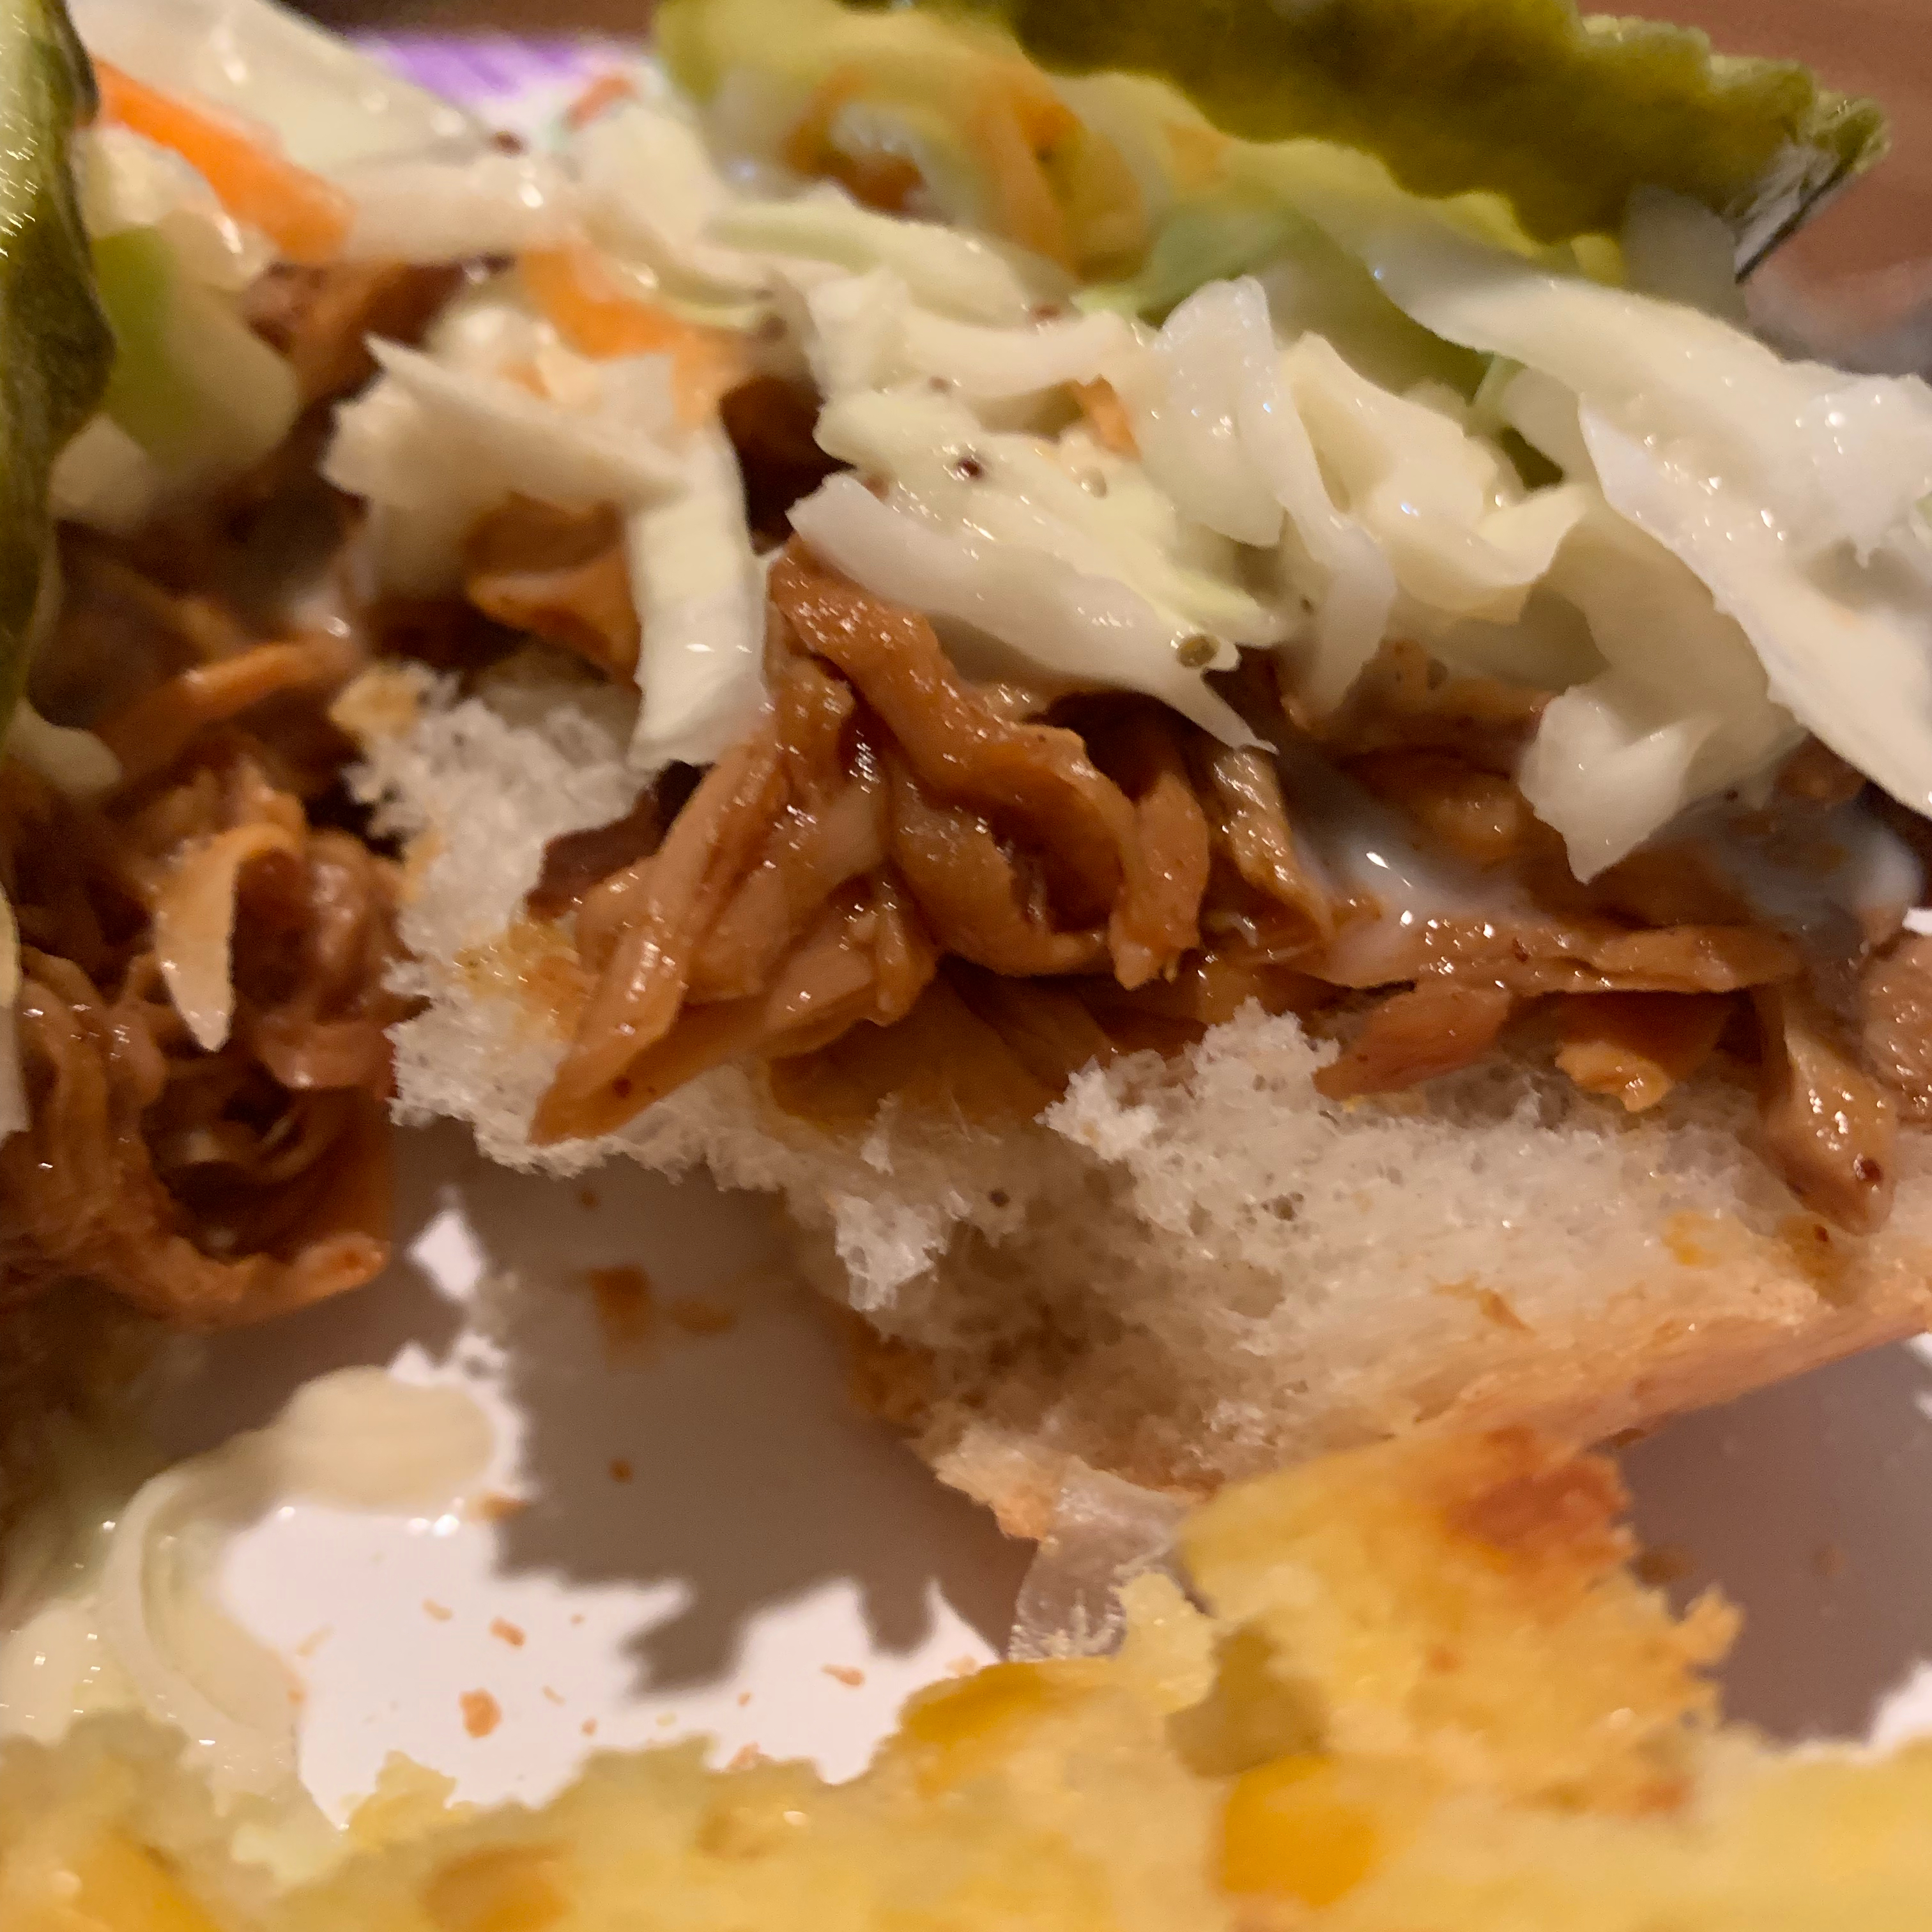 Traditional Creamy Coleslaw